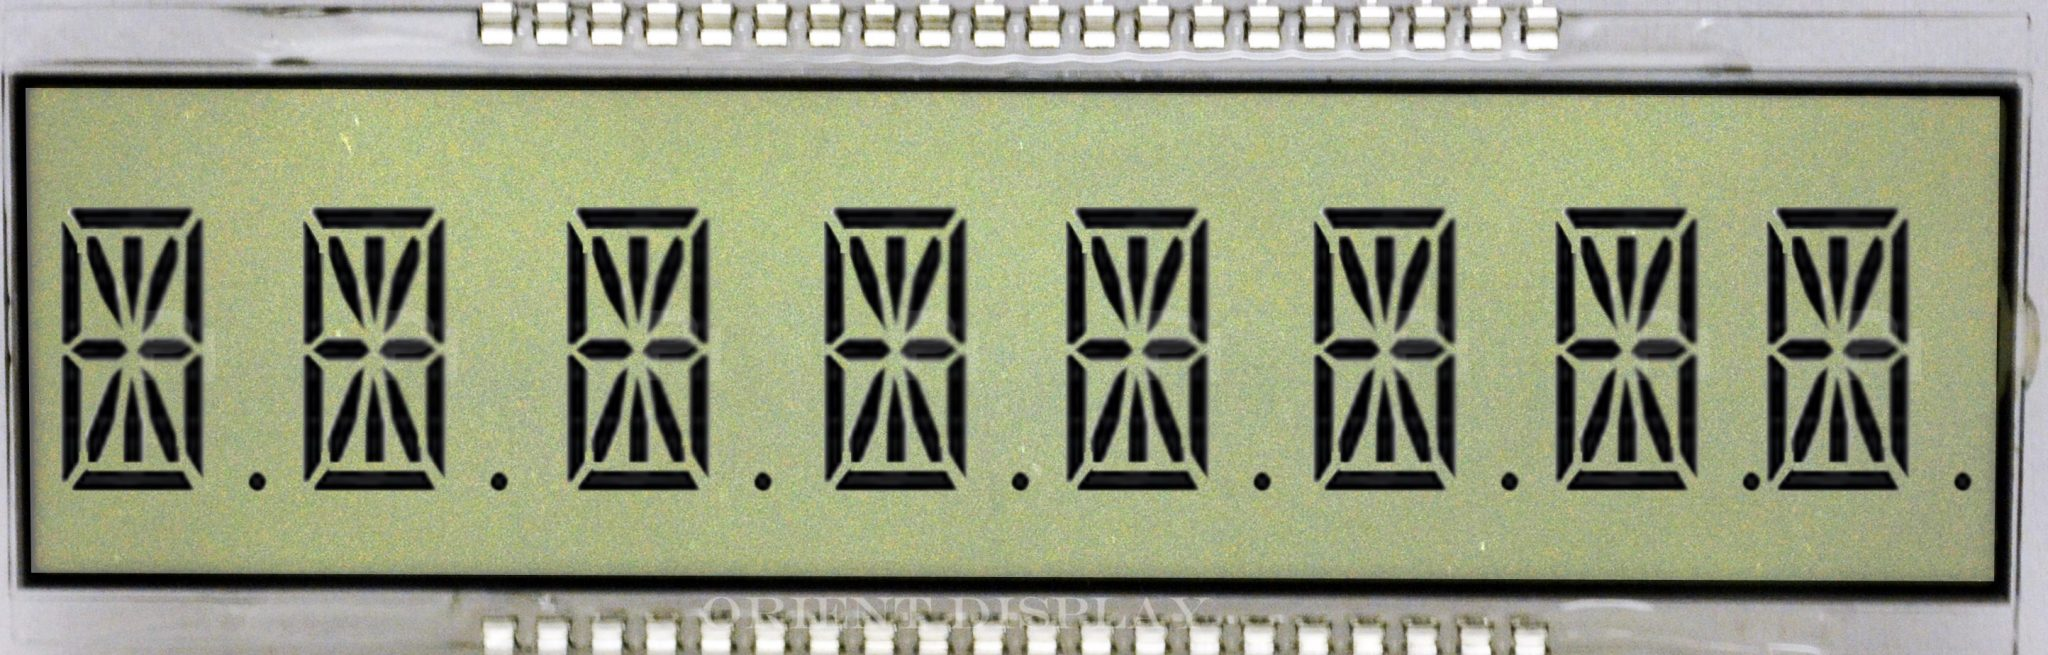 OD-894A (8 Digit LCD Glass Panel)